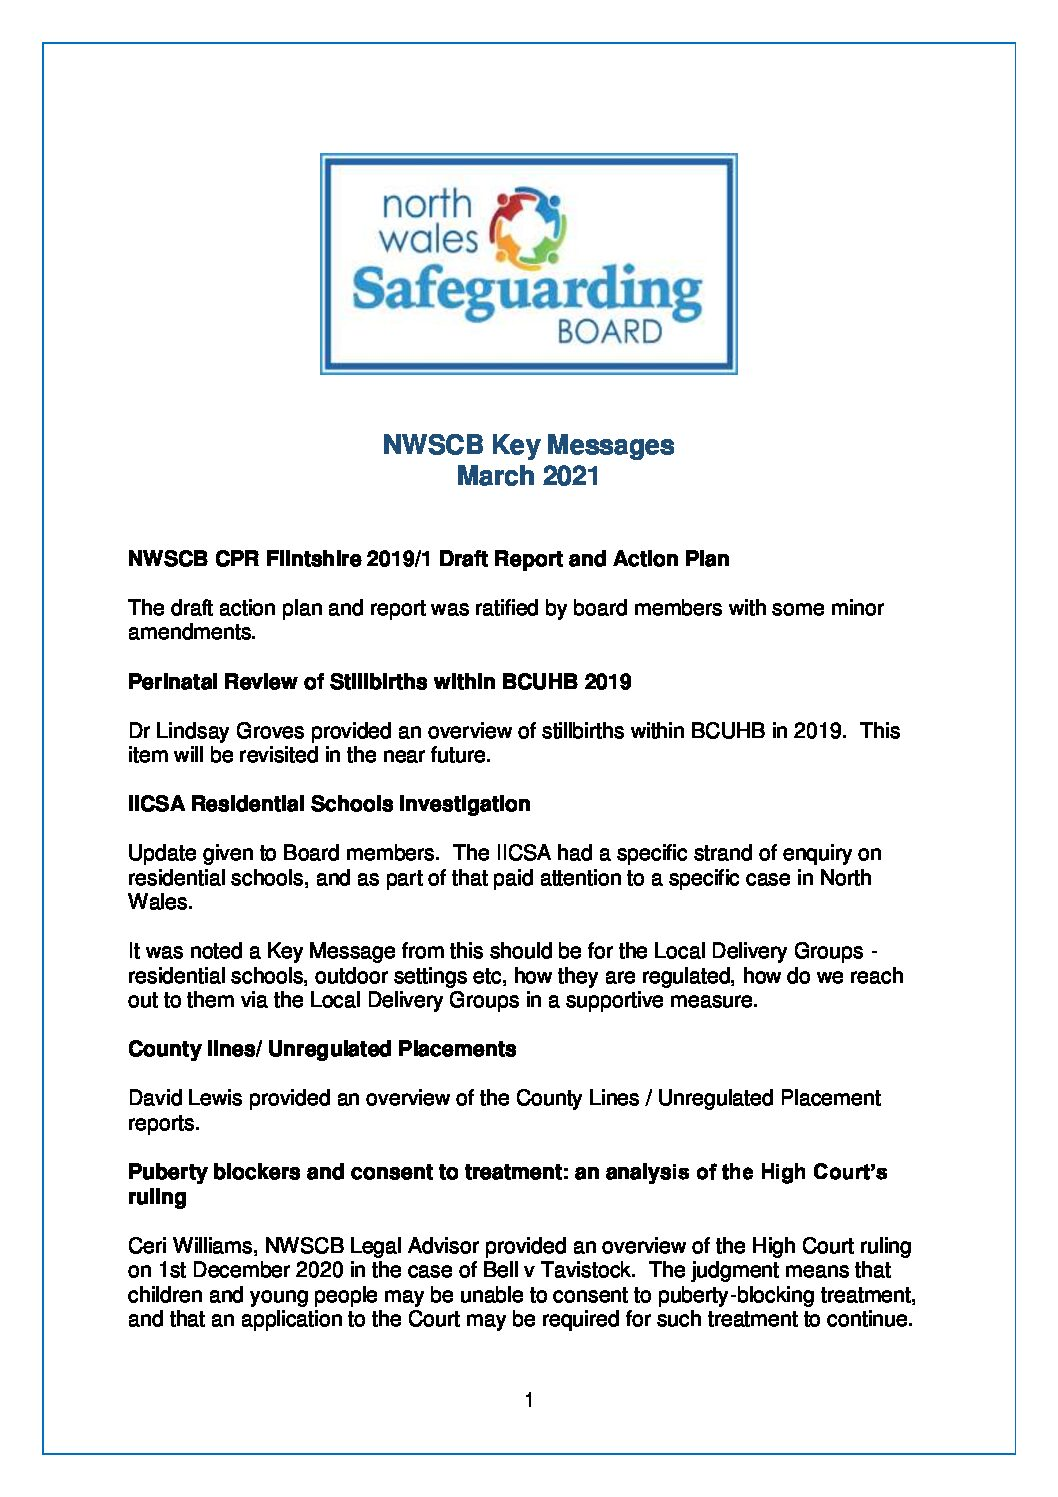 NWSCB Key Messages March 2021